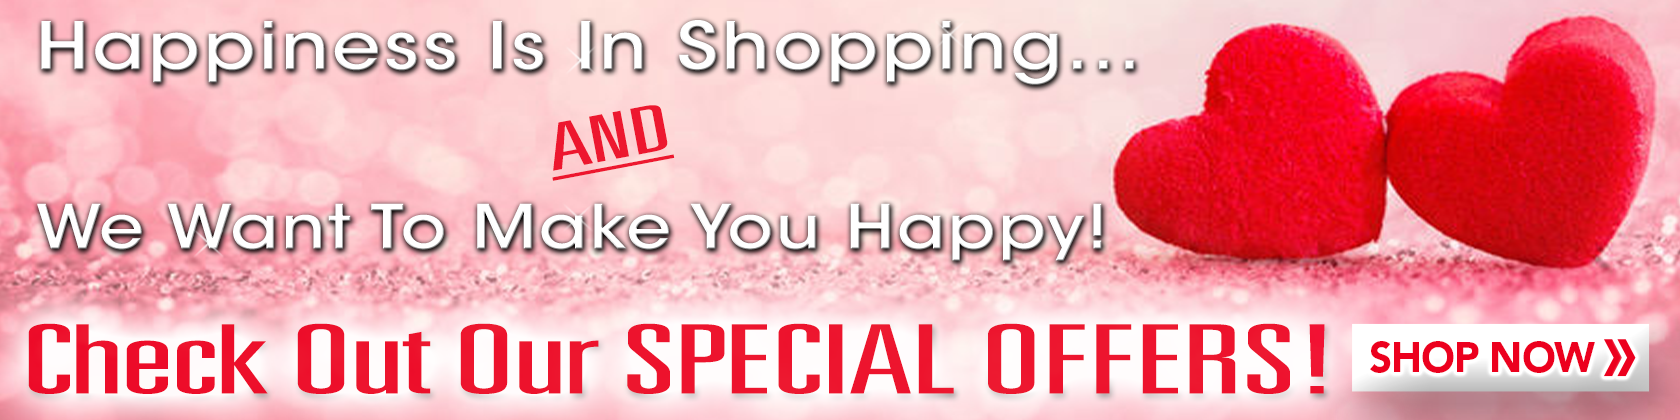 Valentine's Day Special Offers Desktop